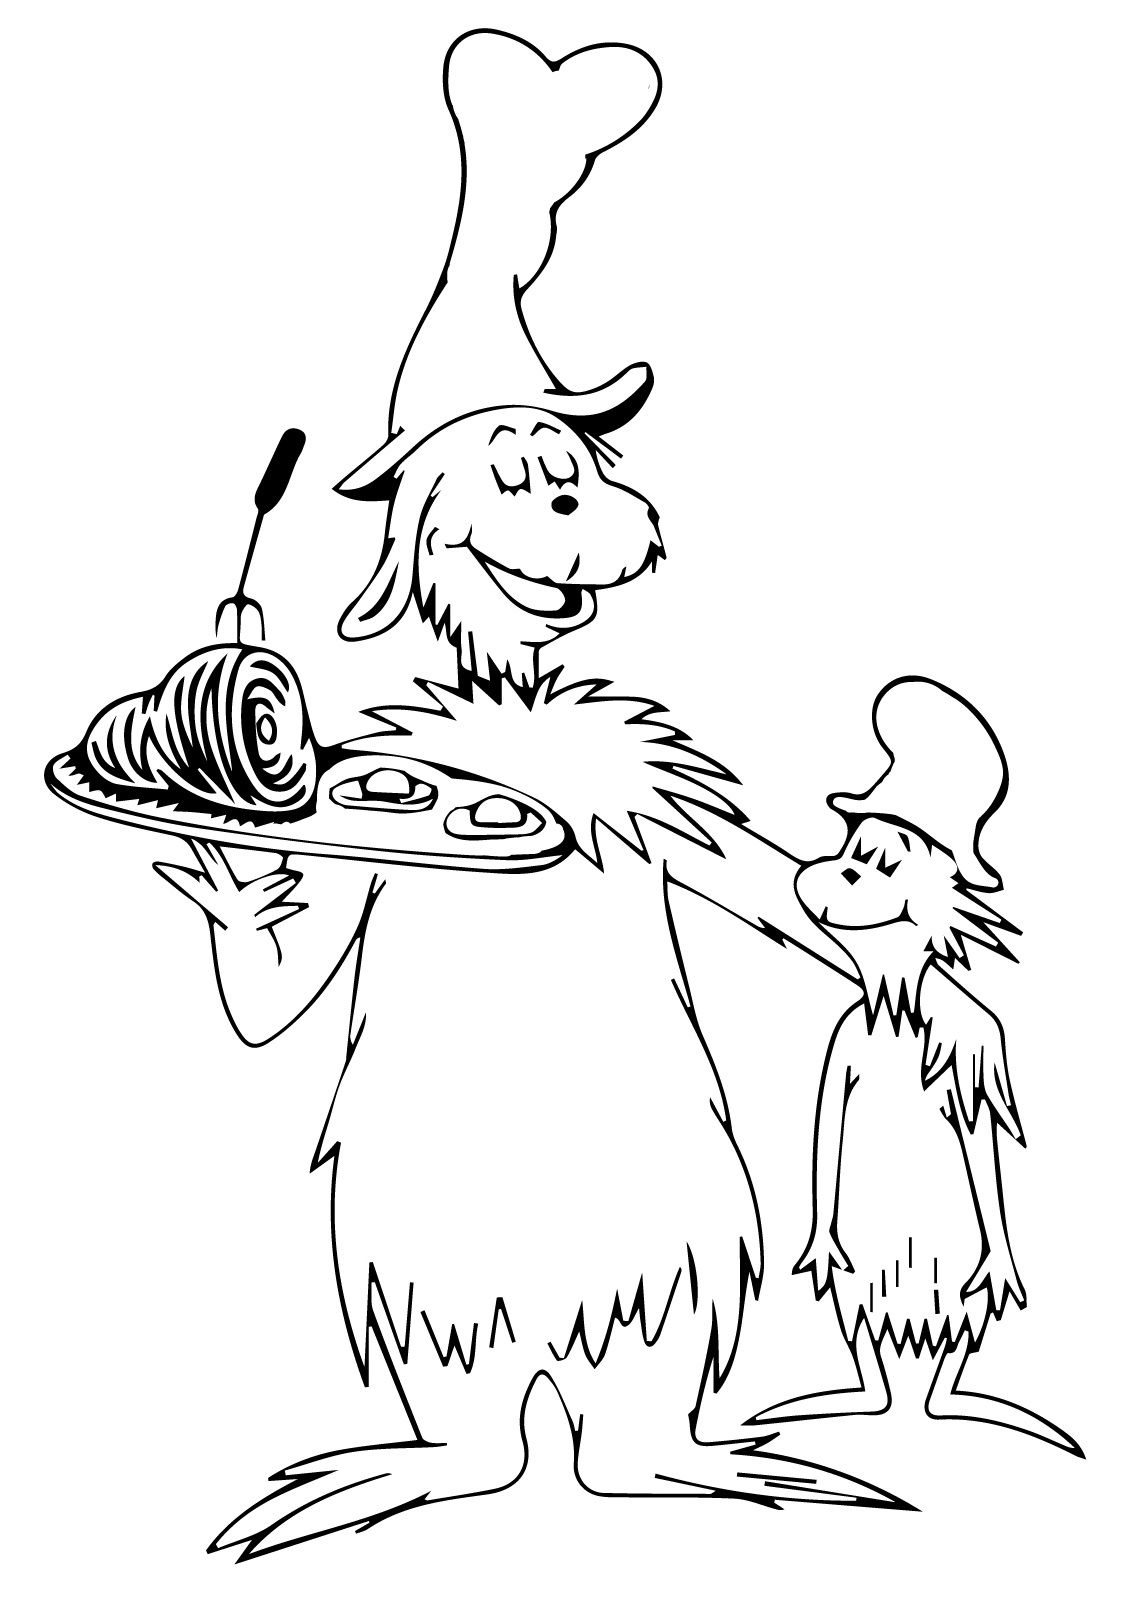 Green Eggs And Ham Coloring Pages For Free Usage Dr Seuss Coloring Pages Green Eggs And Ham Free Coloring Pages